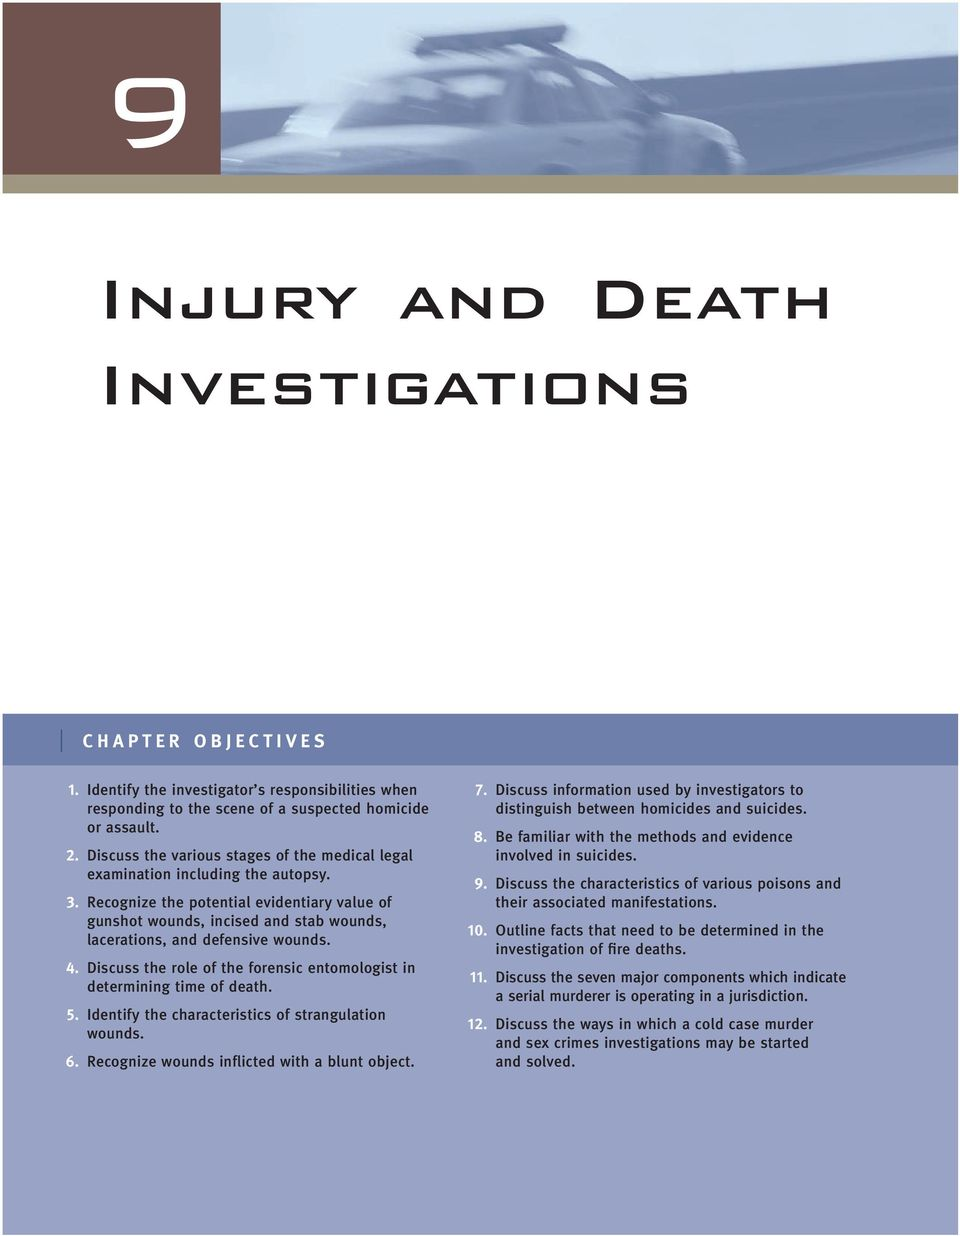 Injury and Death Investigations - PDF